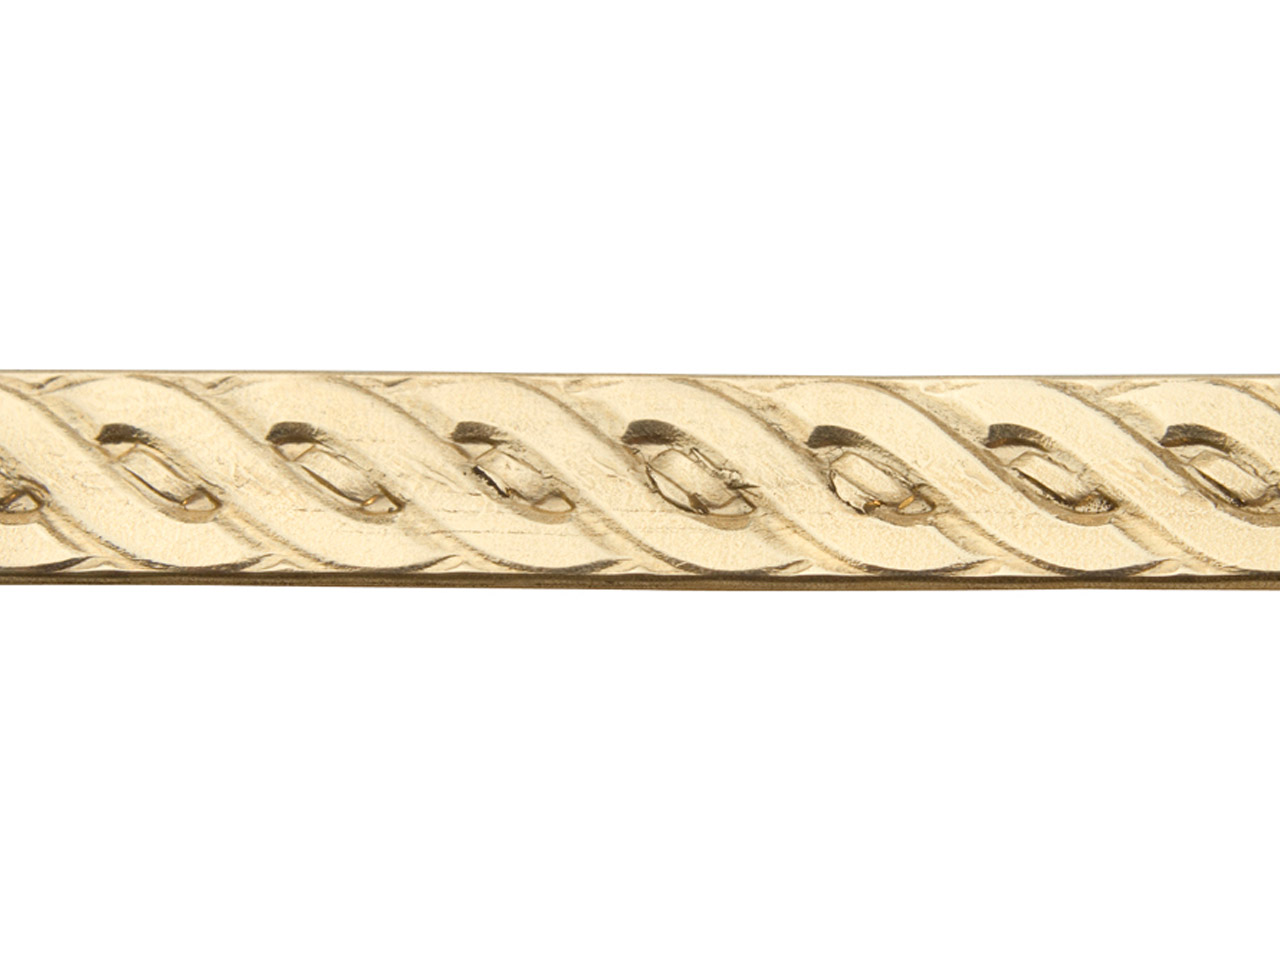 Brass Rope Braid Pattern Wire 0.8mm X 6.4mm X 910mm - cooksongold.com